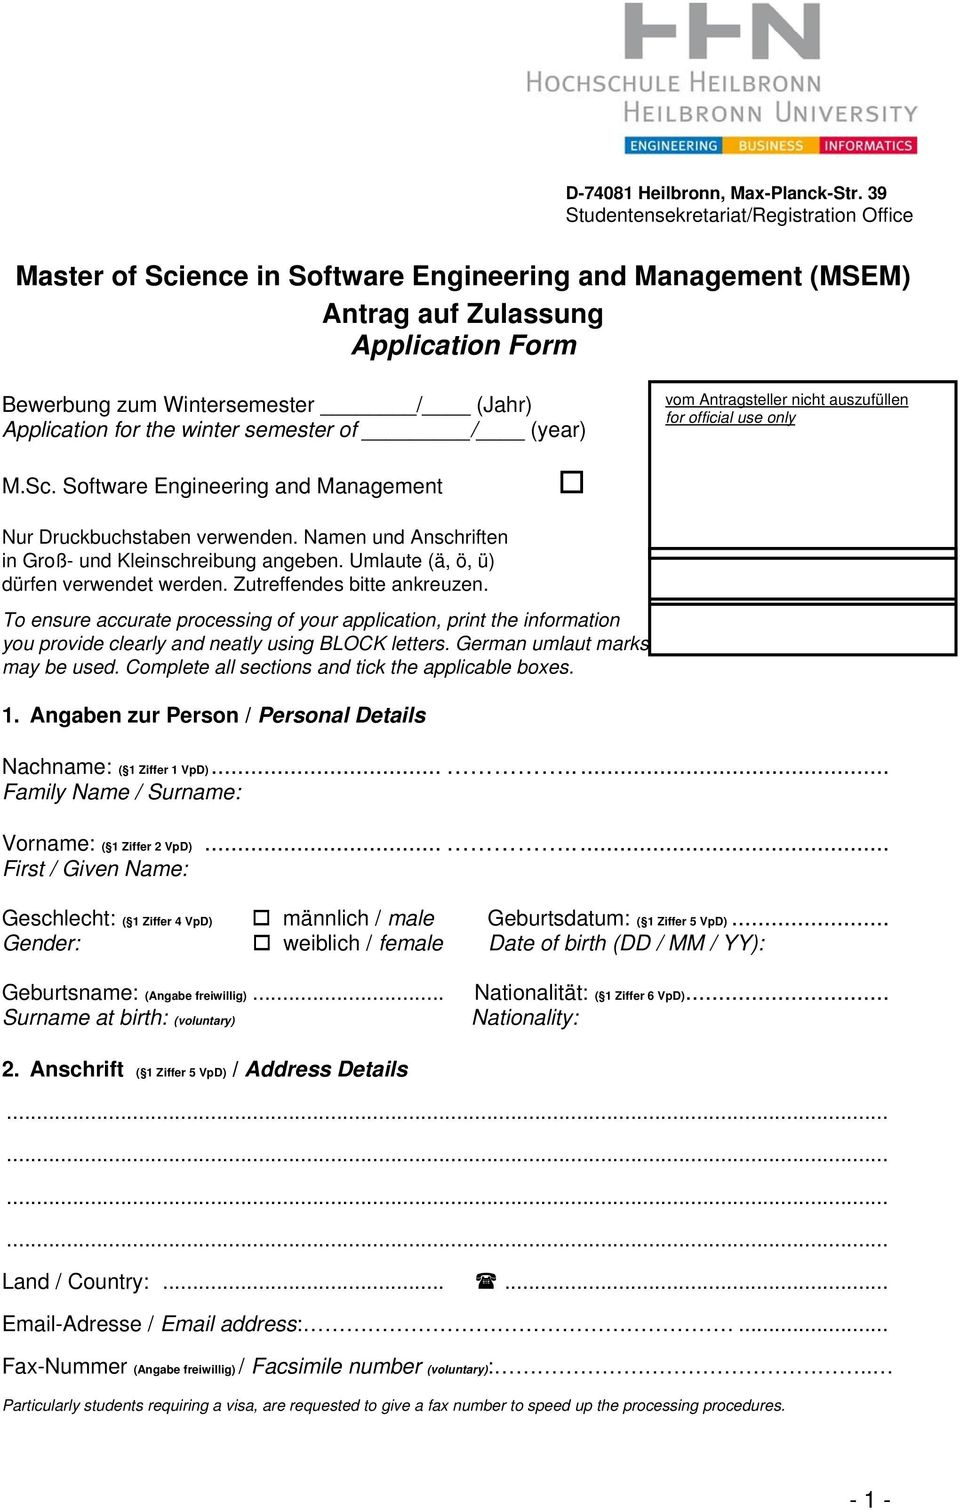 Umlaute (ä, ö, ü) dürfen verwendet werden. Zutreffendes bitte ankreuzen. To ensure accurate processing of your application, print the information you provide clearly and neatly using BLOCK letters.